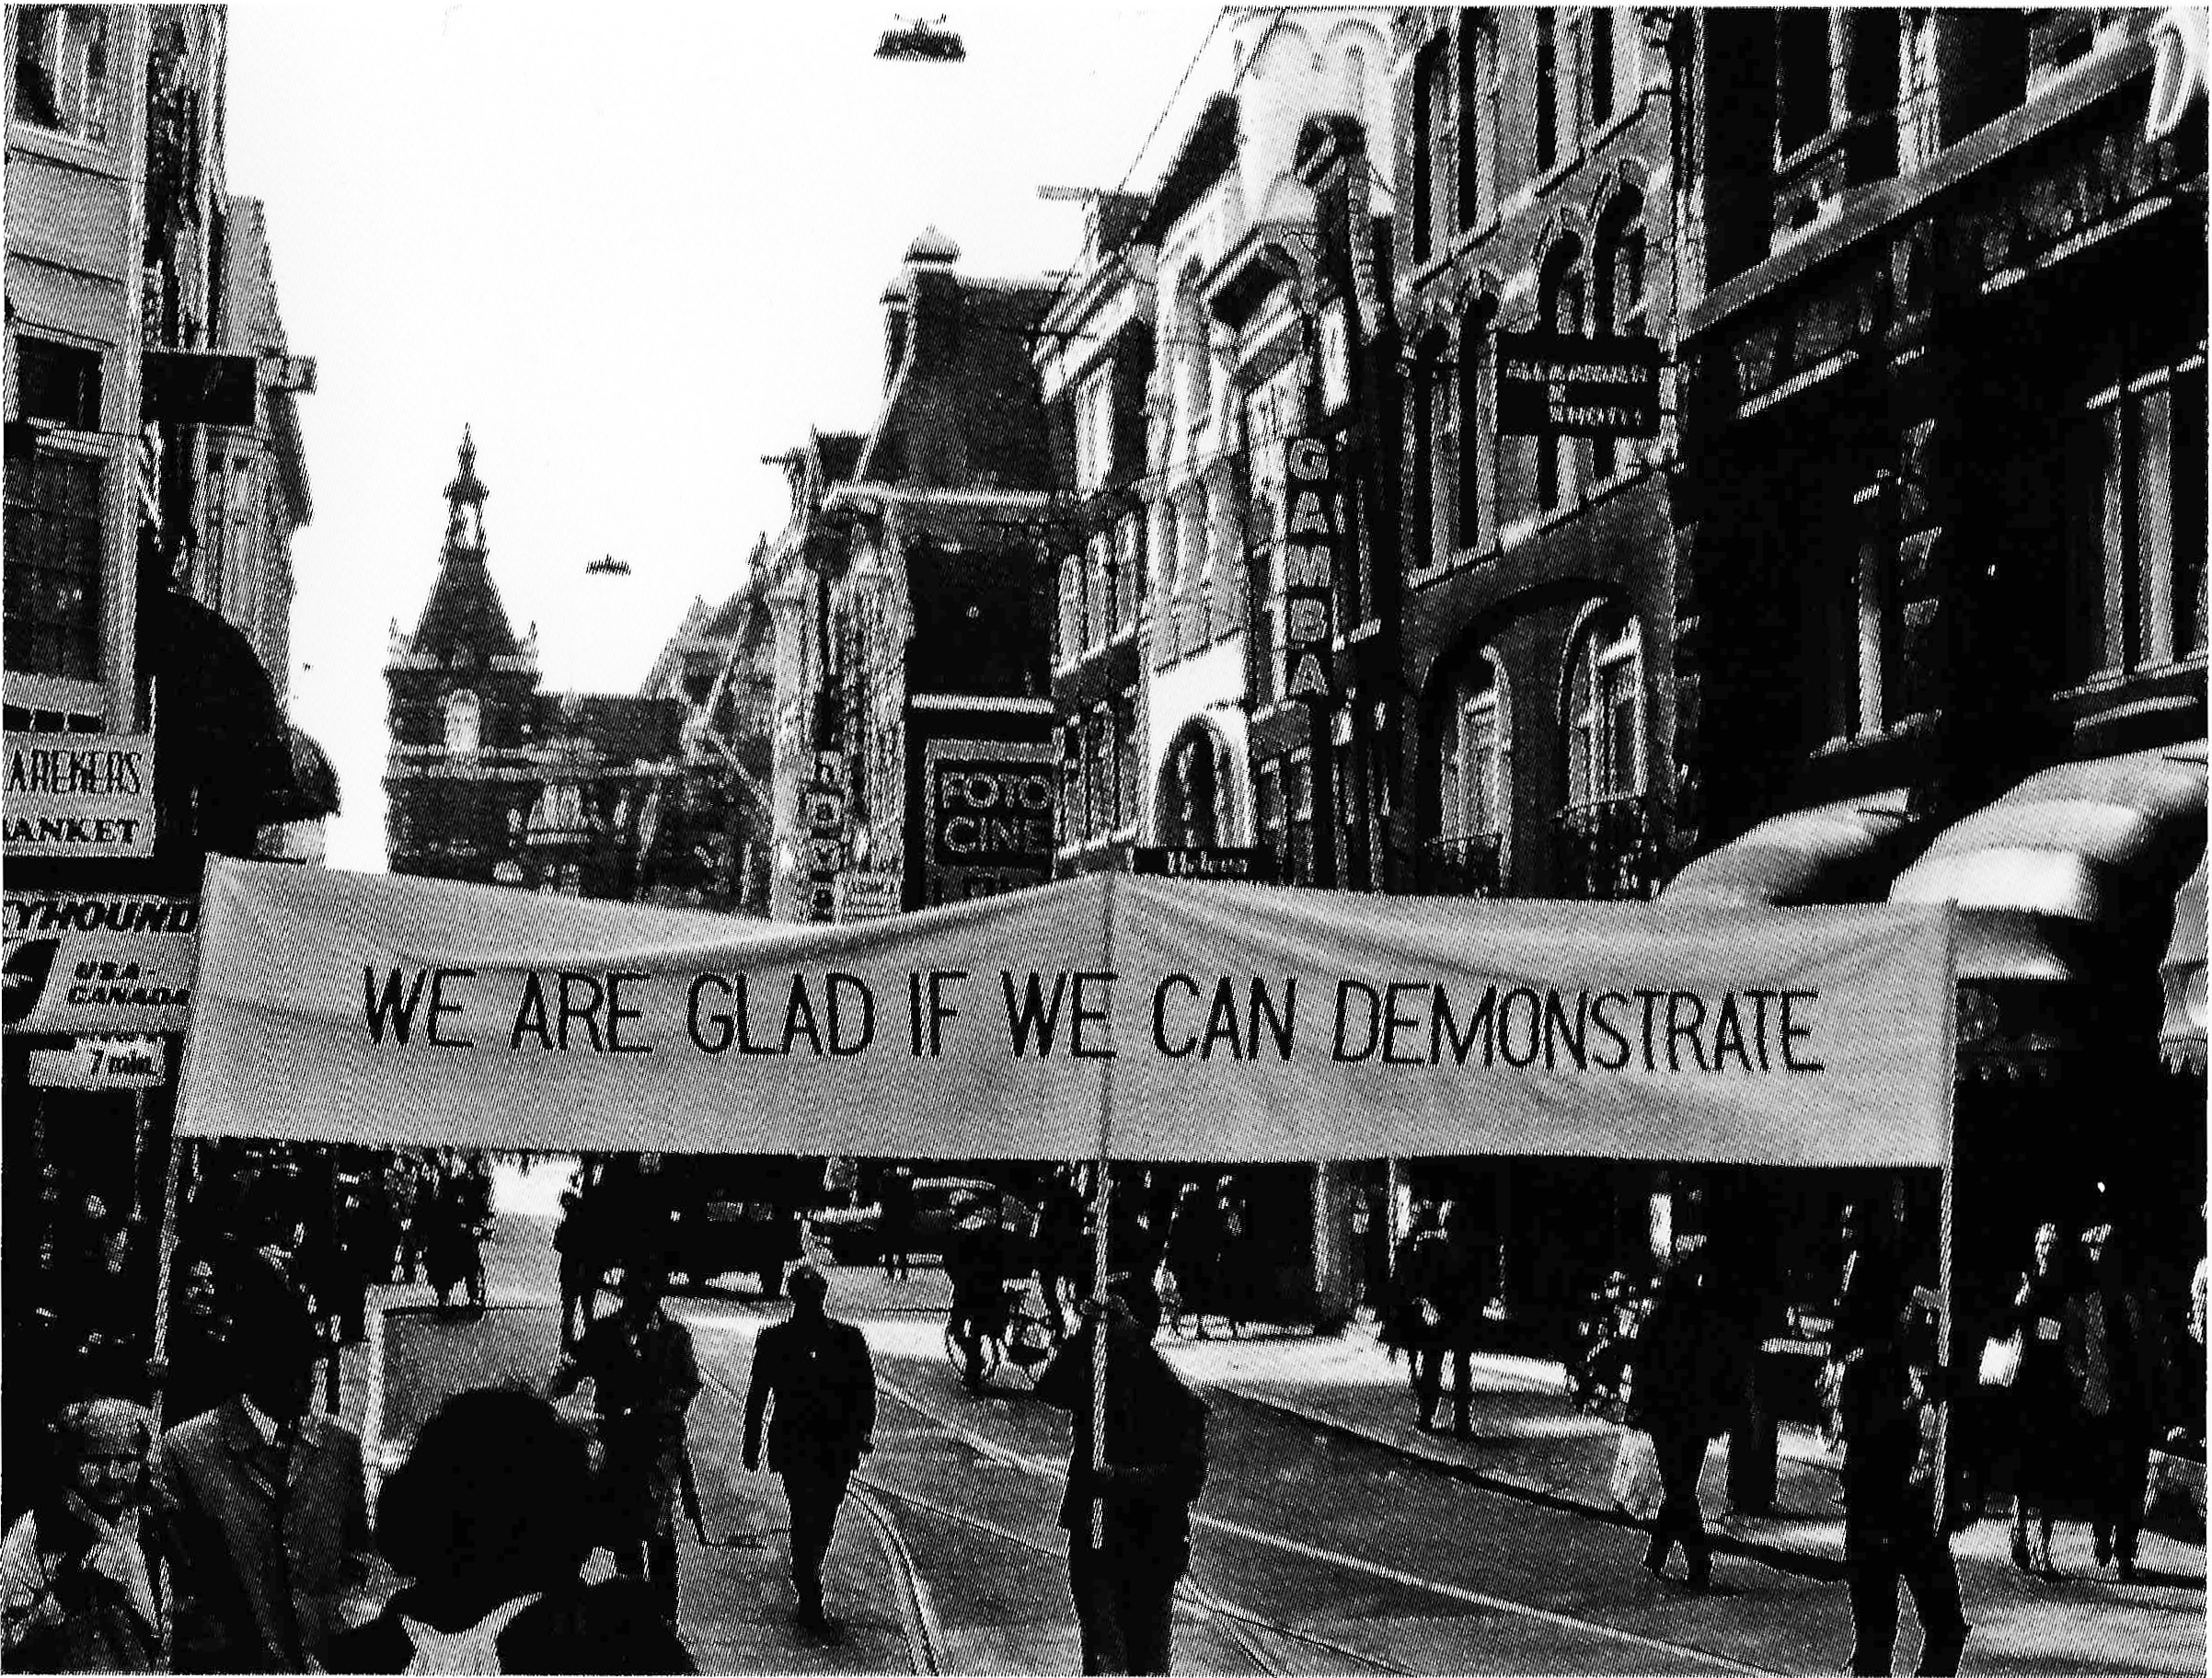 Tot_Endre_Oromdemonstracio_Gladness_Demonstration_Amsterdam_1979